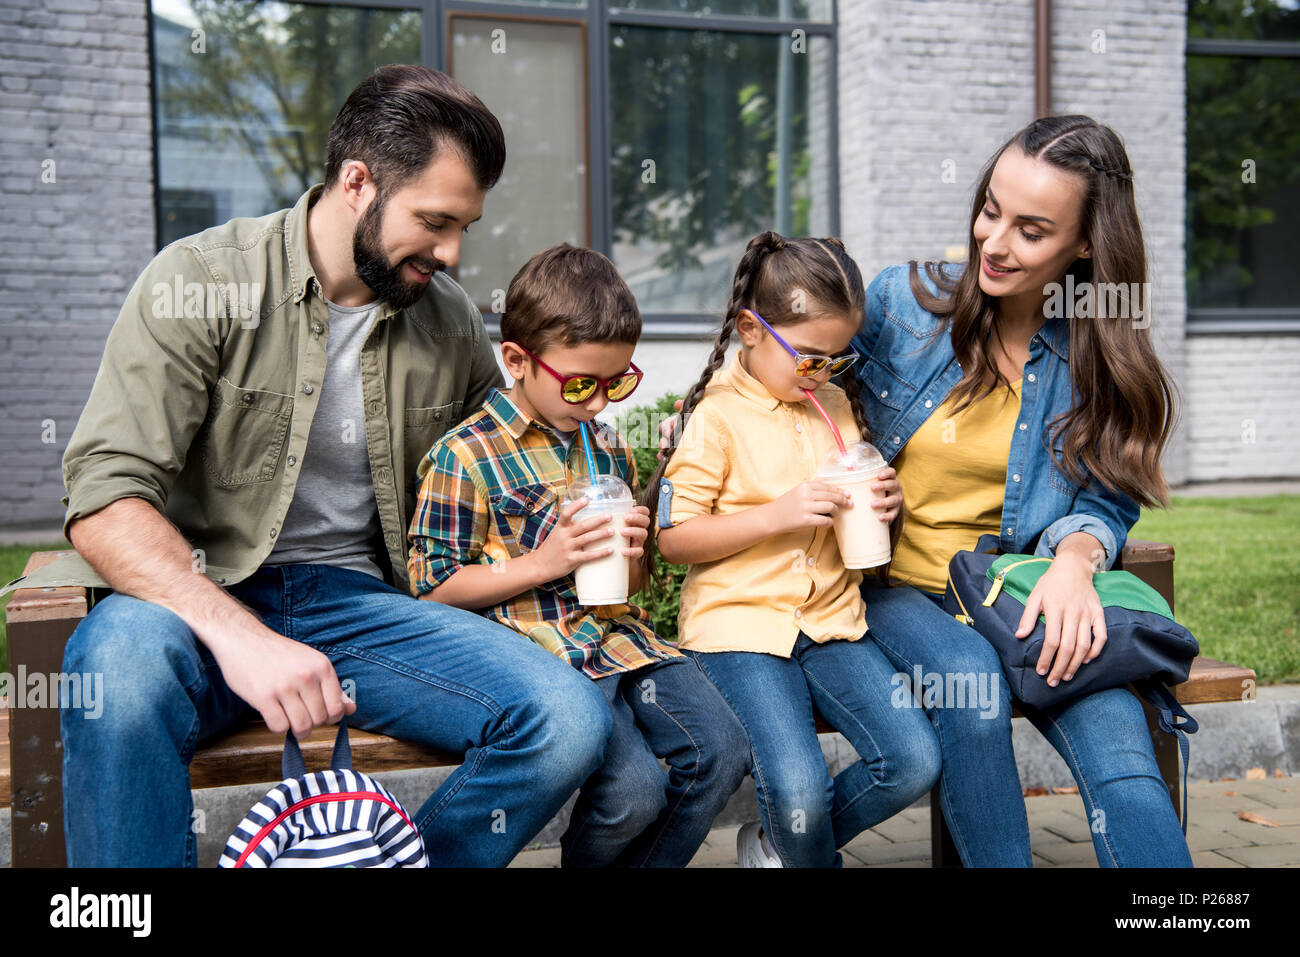 parents and children with milkshakes sitting on bench with backpacks -  Stock Image fbd8dbcc41d9e